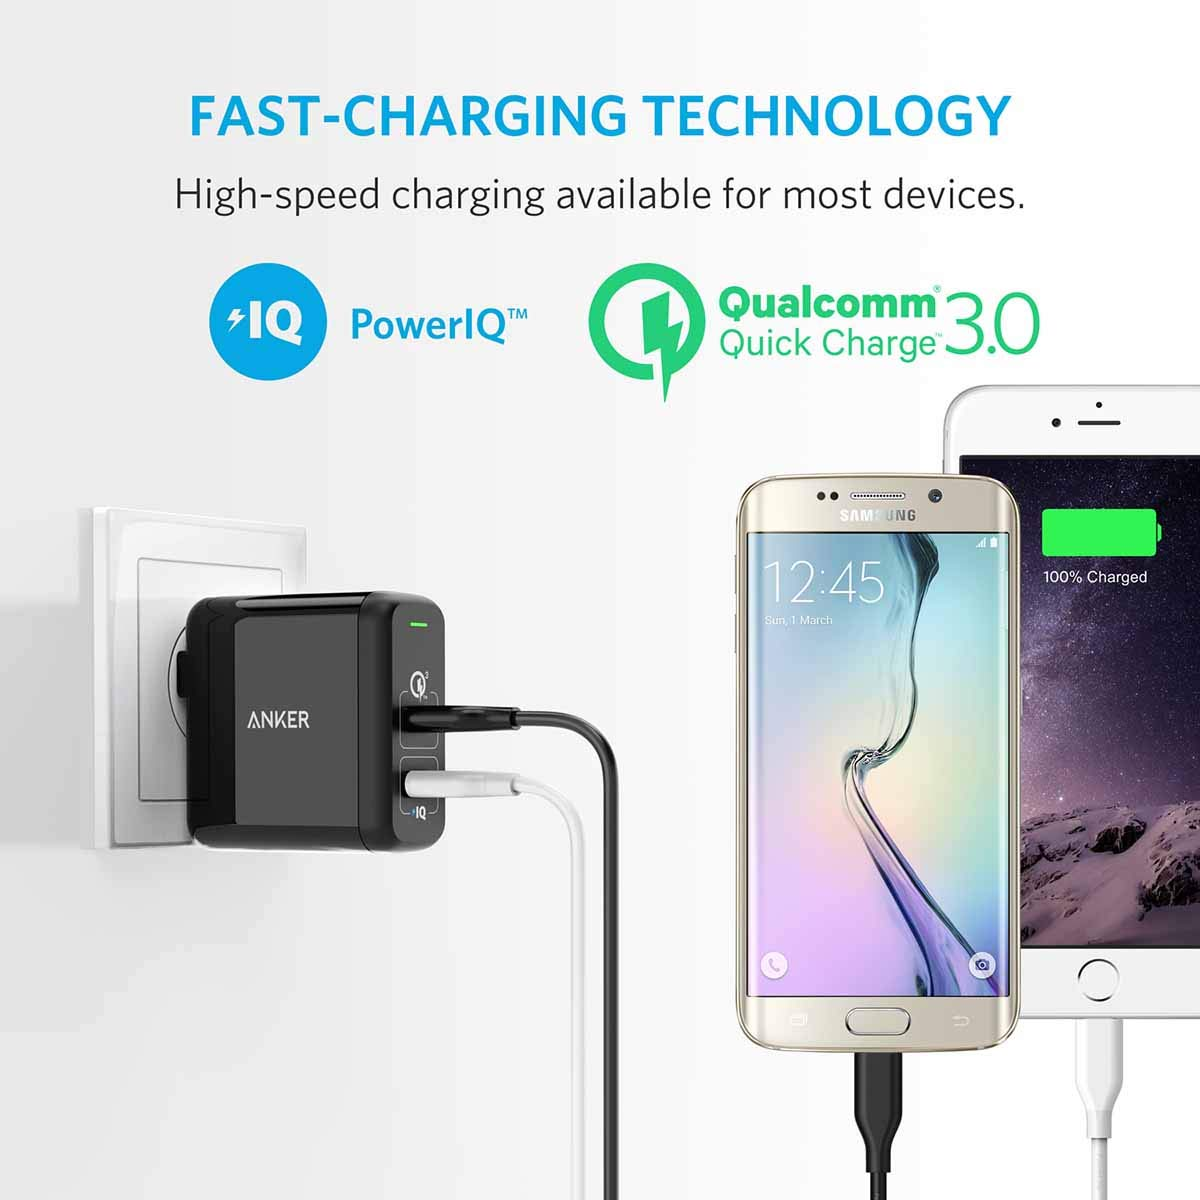 Anker Quick Charge 30 315w Dual Usb Wall Charger The Circuit Adapter Mobile Phones Phone Battery Powerport 2 For Galaxy S9 S8 S7 Edge Plus Note 8 7 And Poweriq Iphone